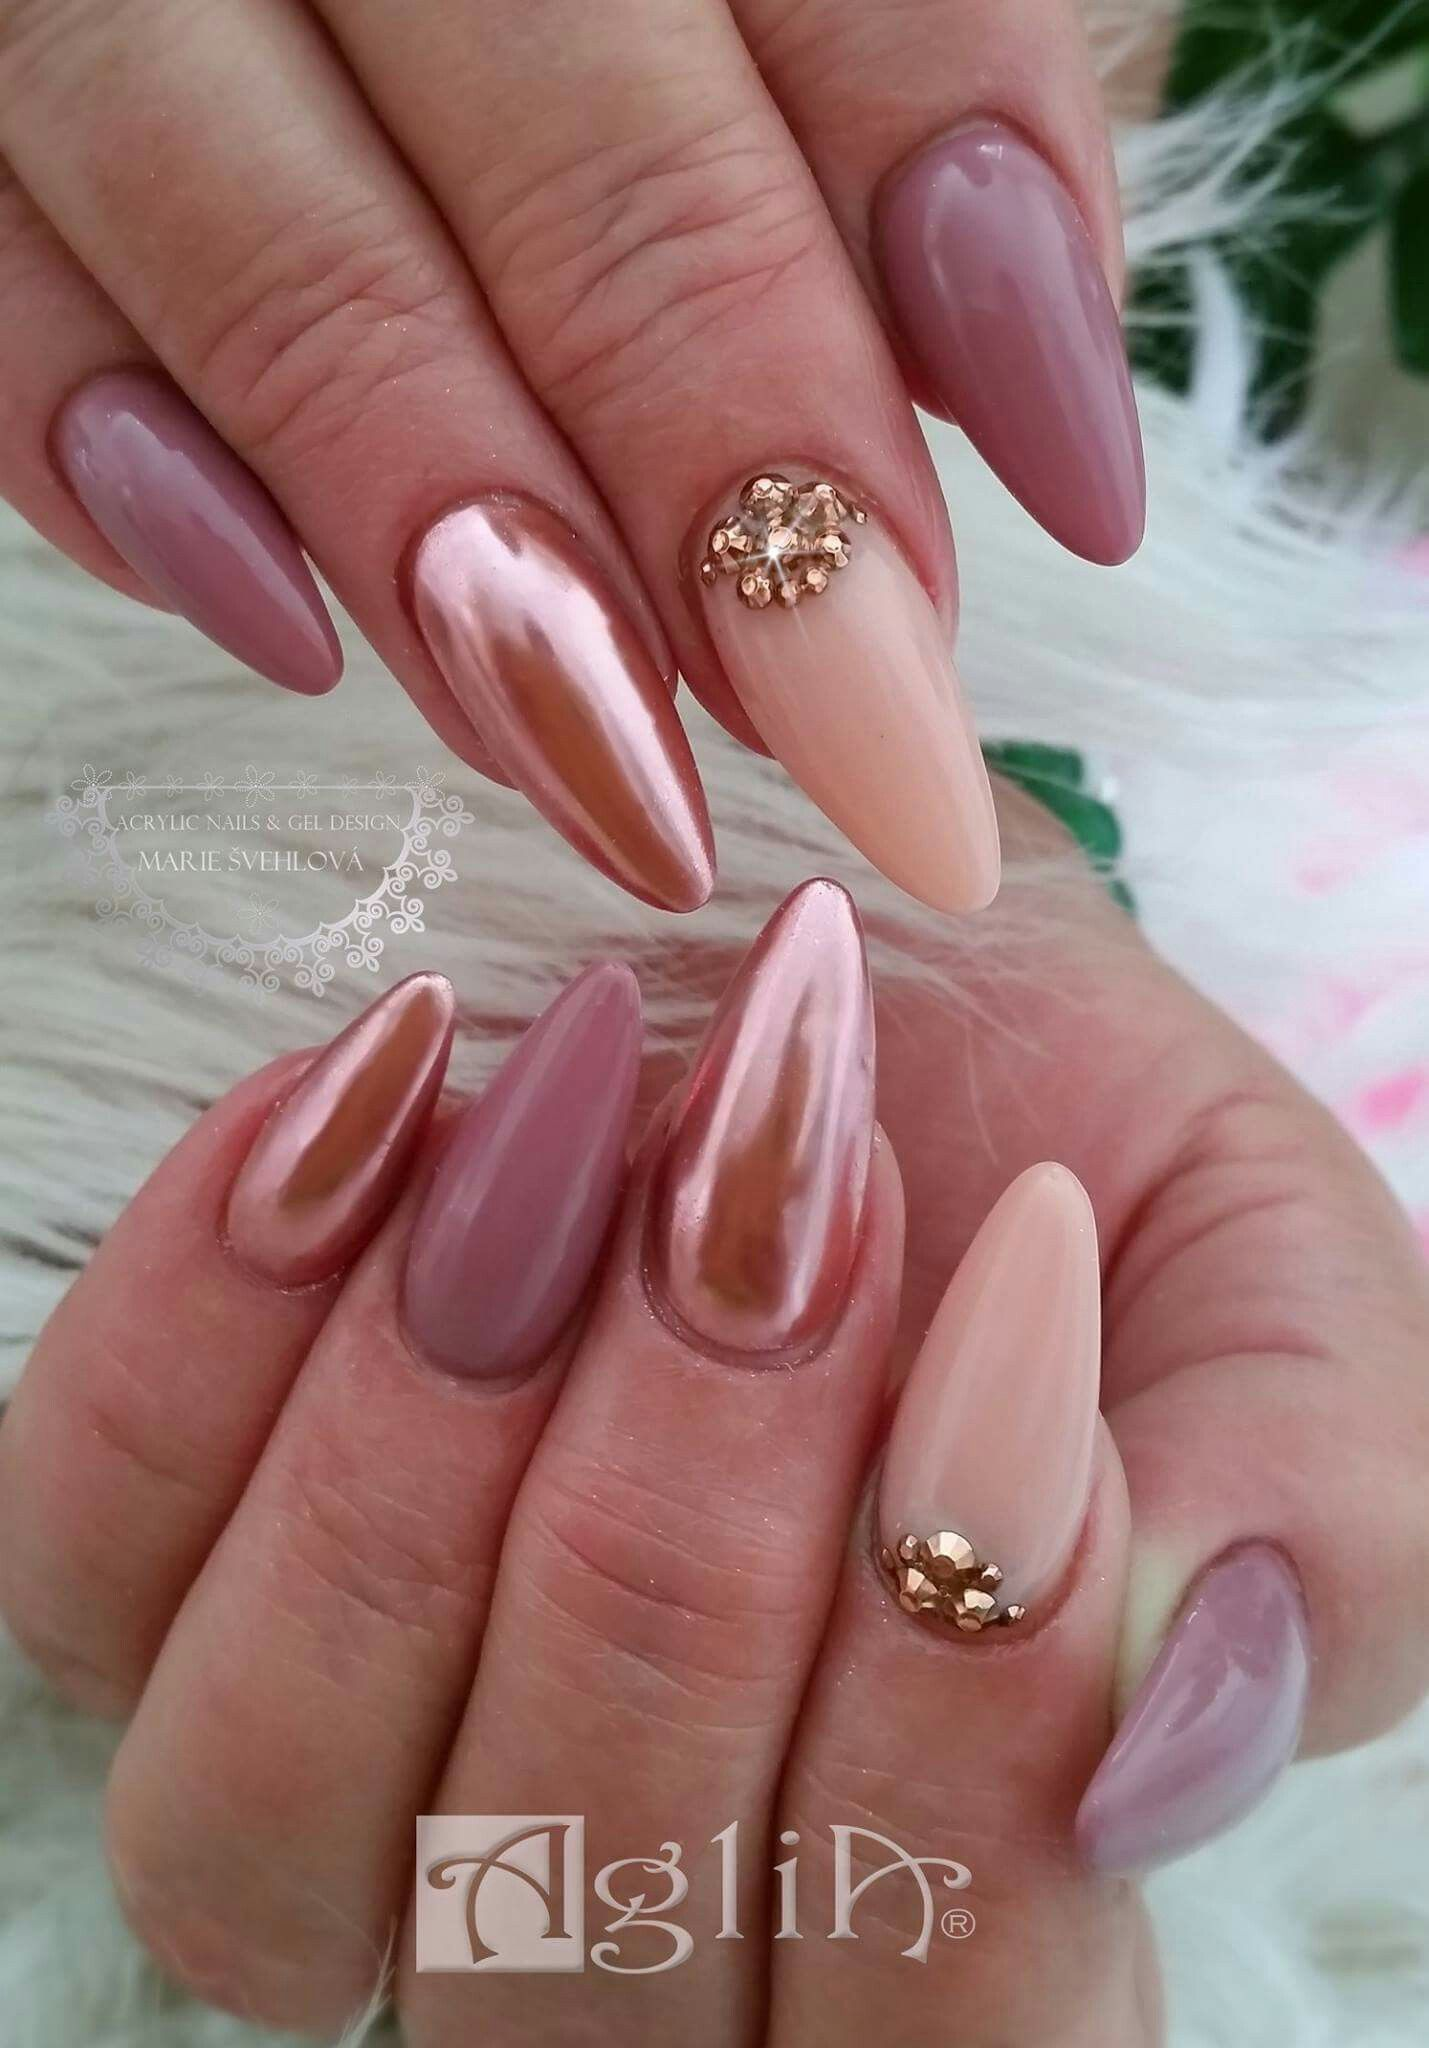 Acrylic Nails Gel Design Rose Gold Pigment